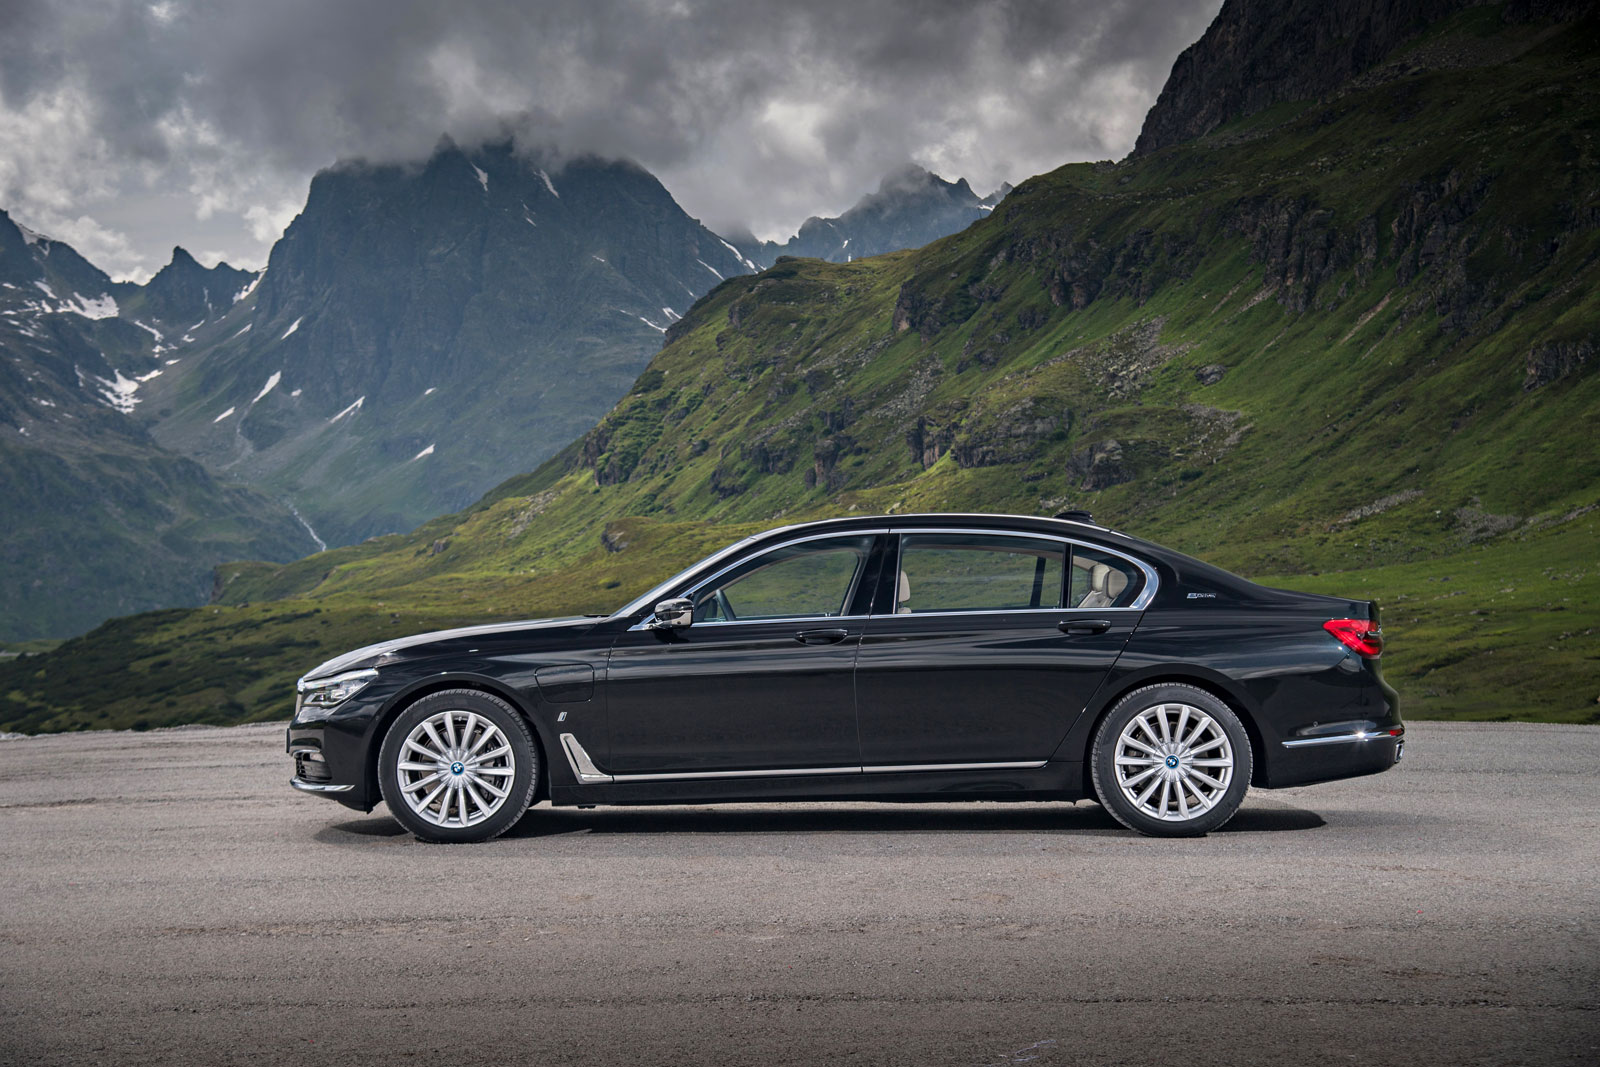 BMW i Technology Makes Debut On The New BMW 740e And 740Le xDRIVE 4